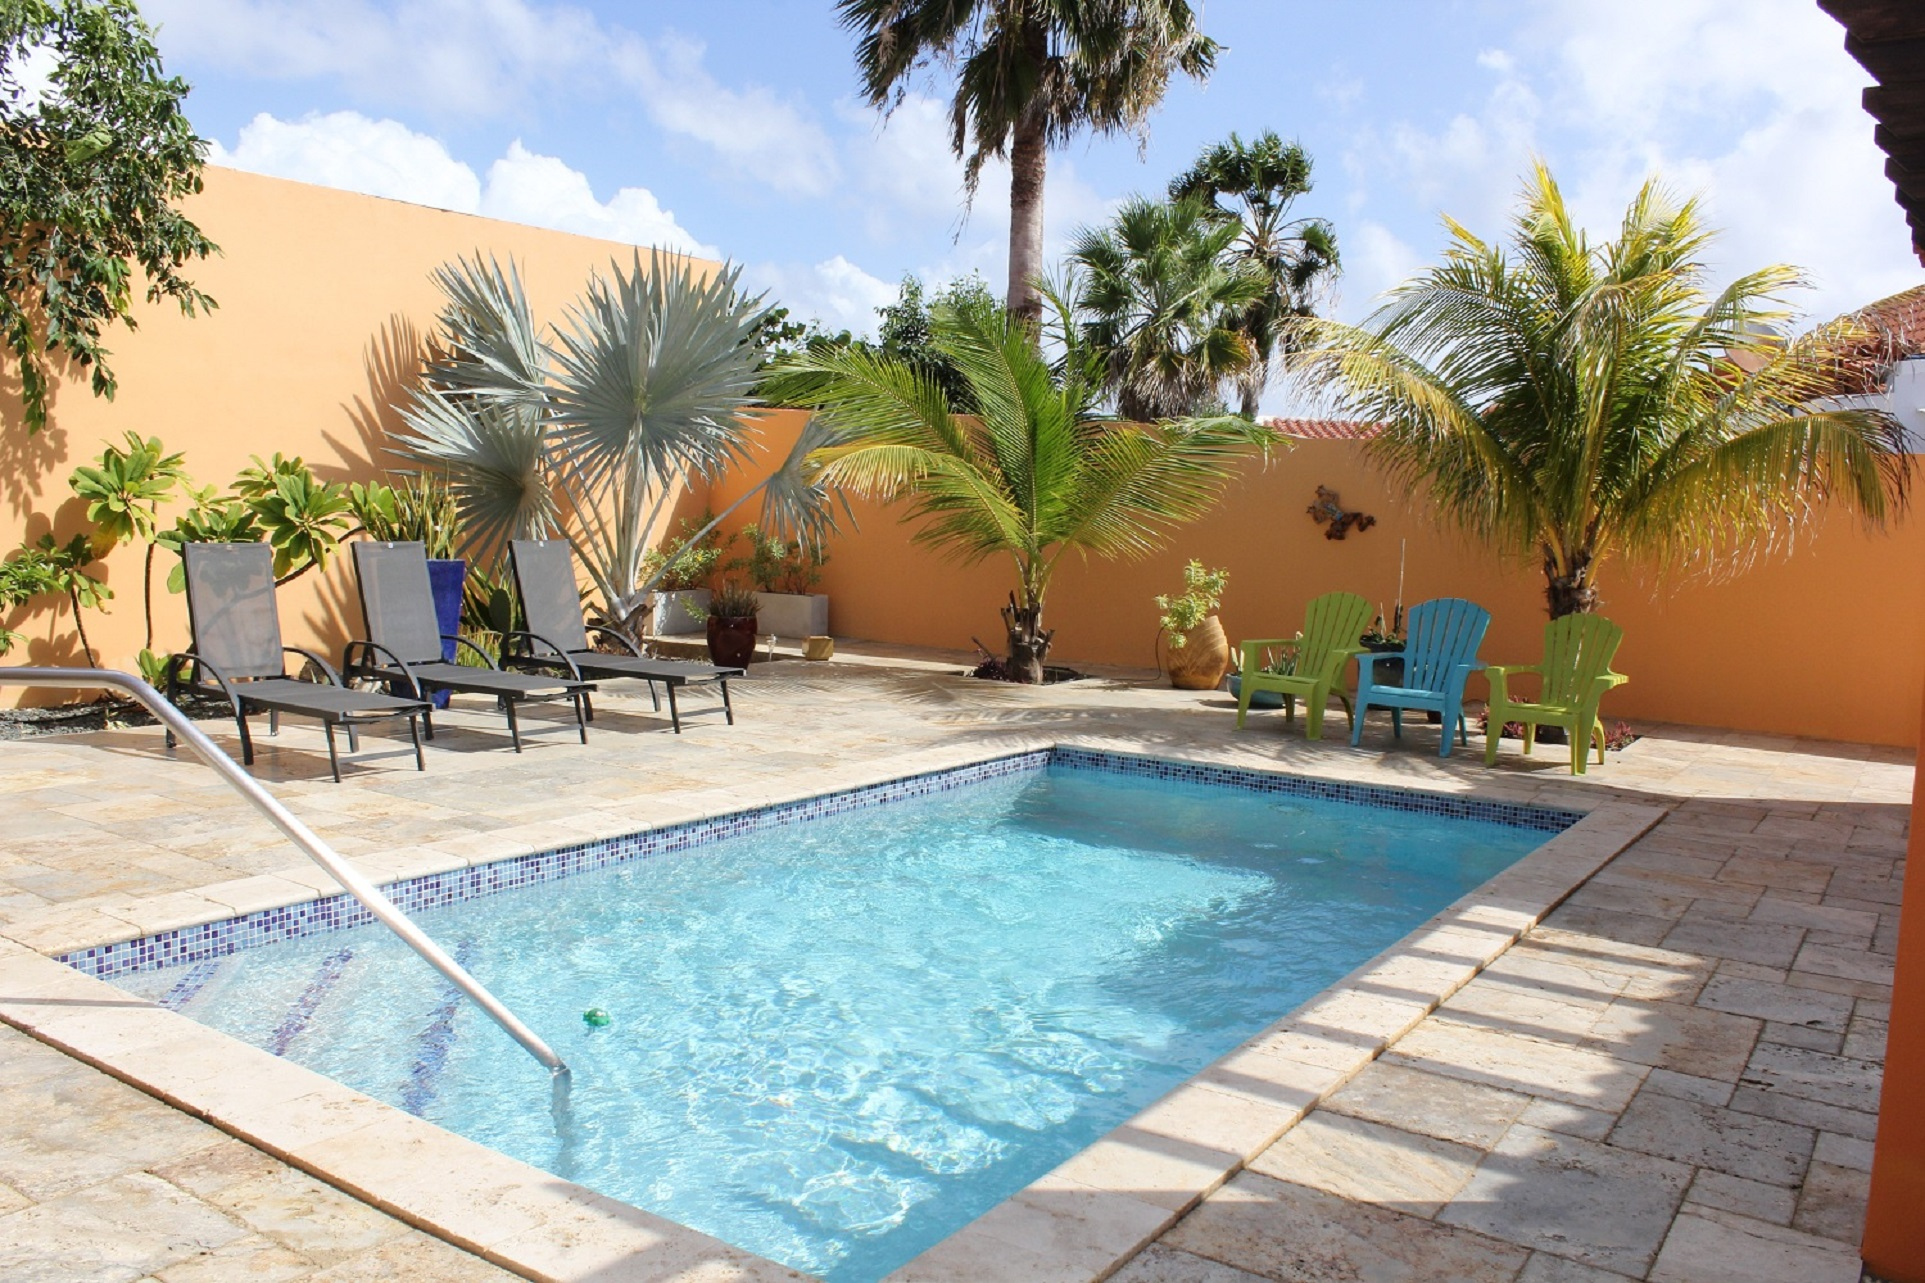 Apartment Aruba Day Dreams  only minutes drive away from the best beaches photo 23183124